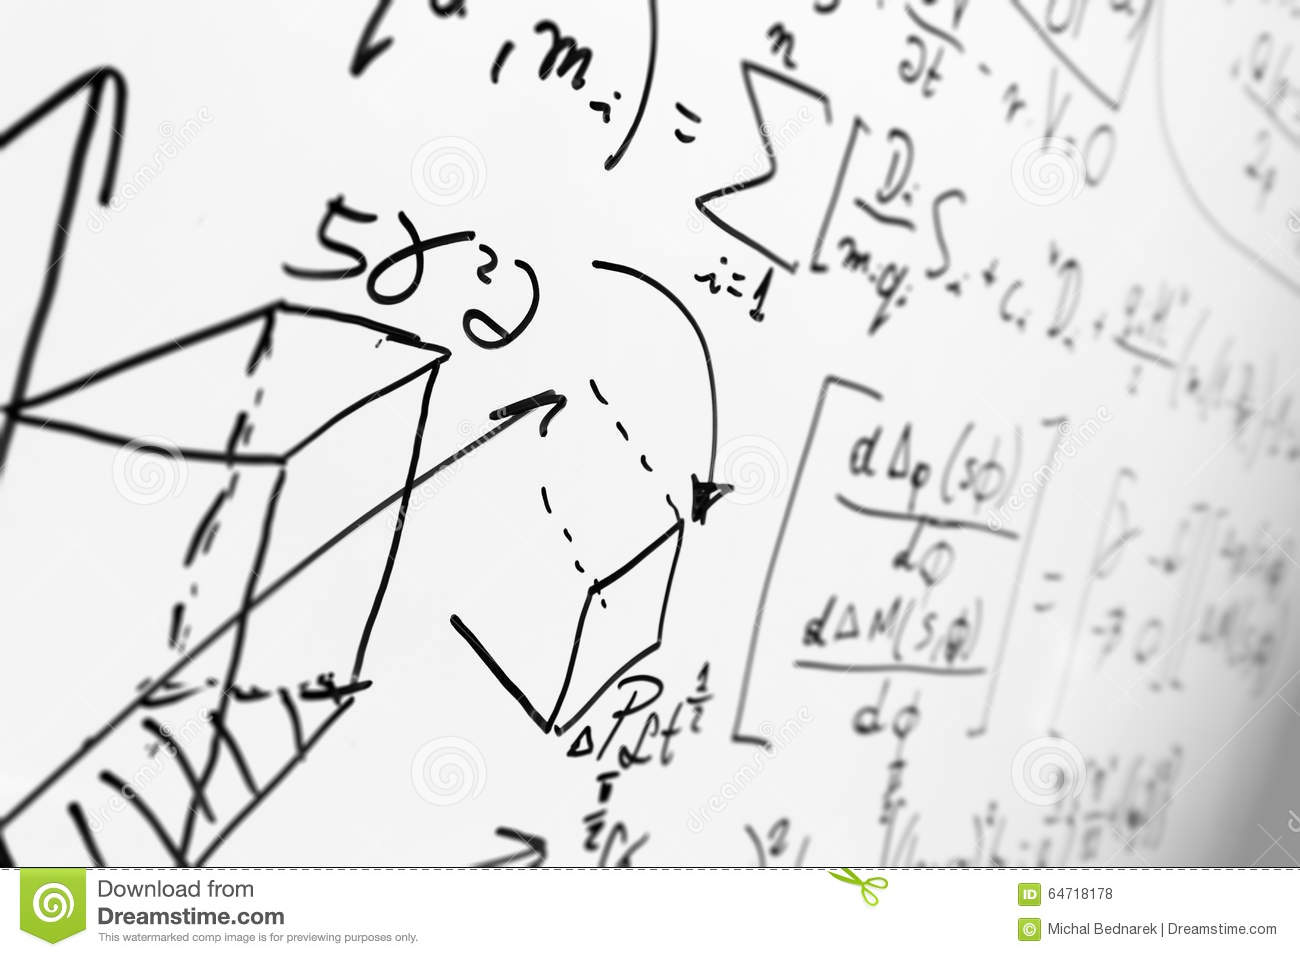 Complex math formulas on whiteboard mathematics and science with royalty free stock photo biocorpaavc